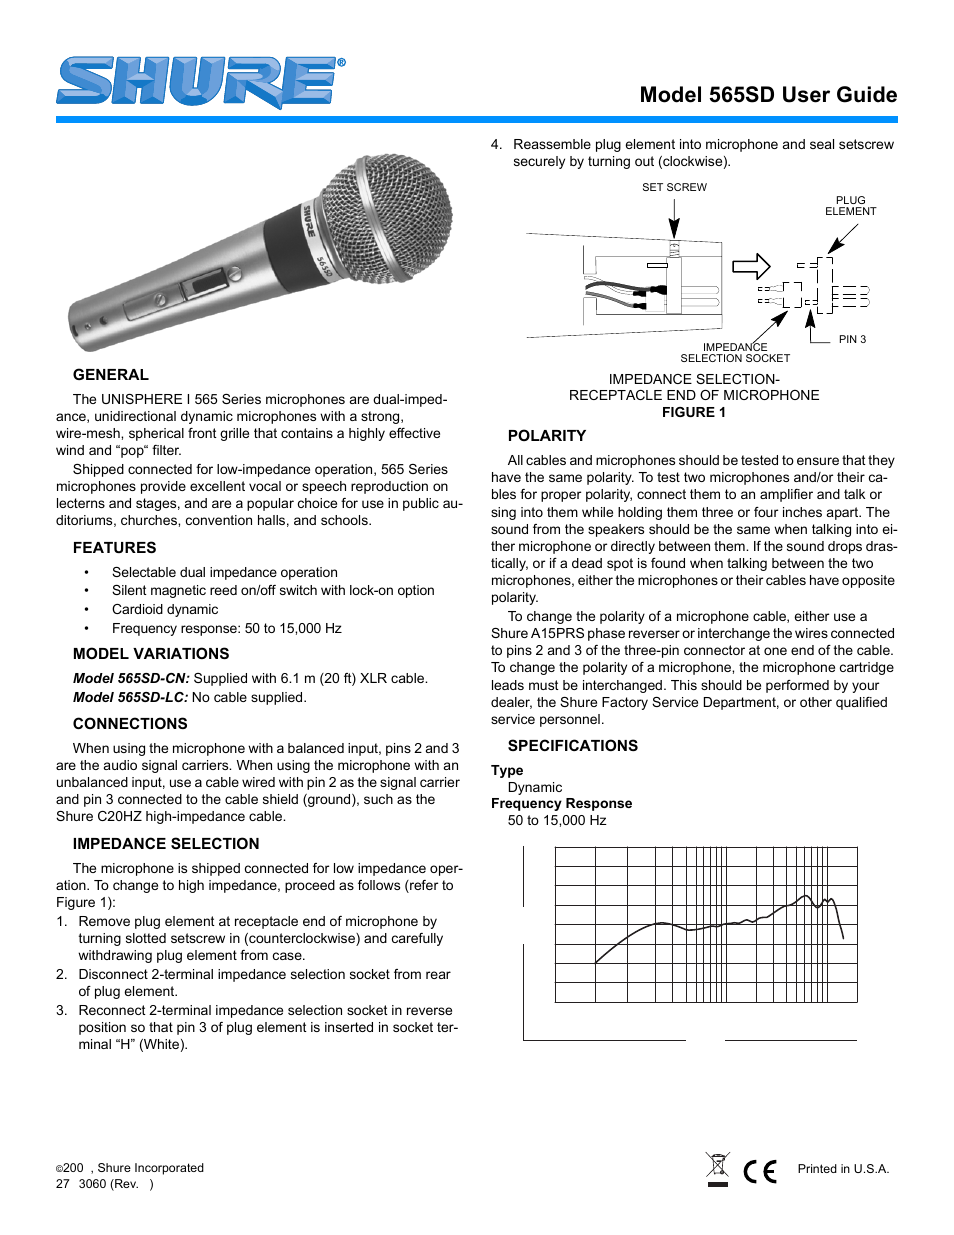 Shure 565sd User Manual 12 Pages